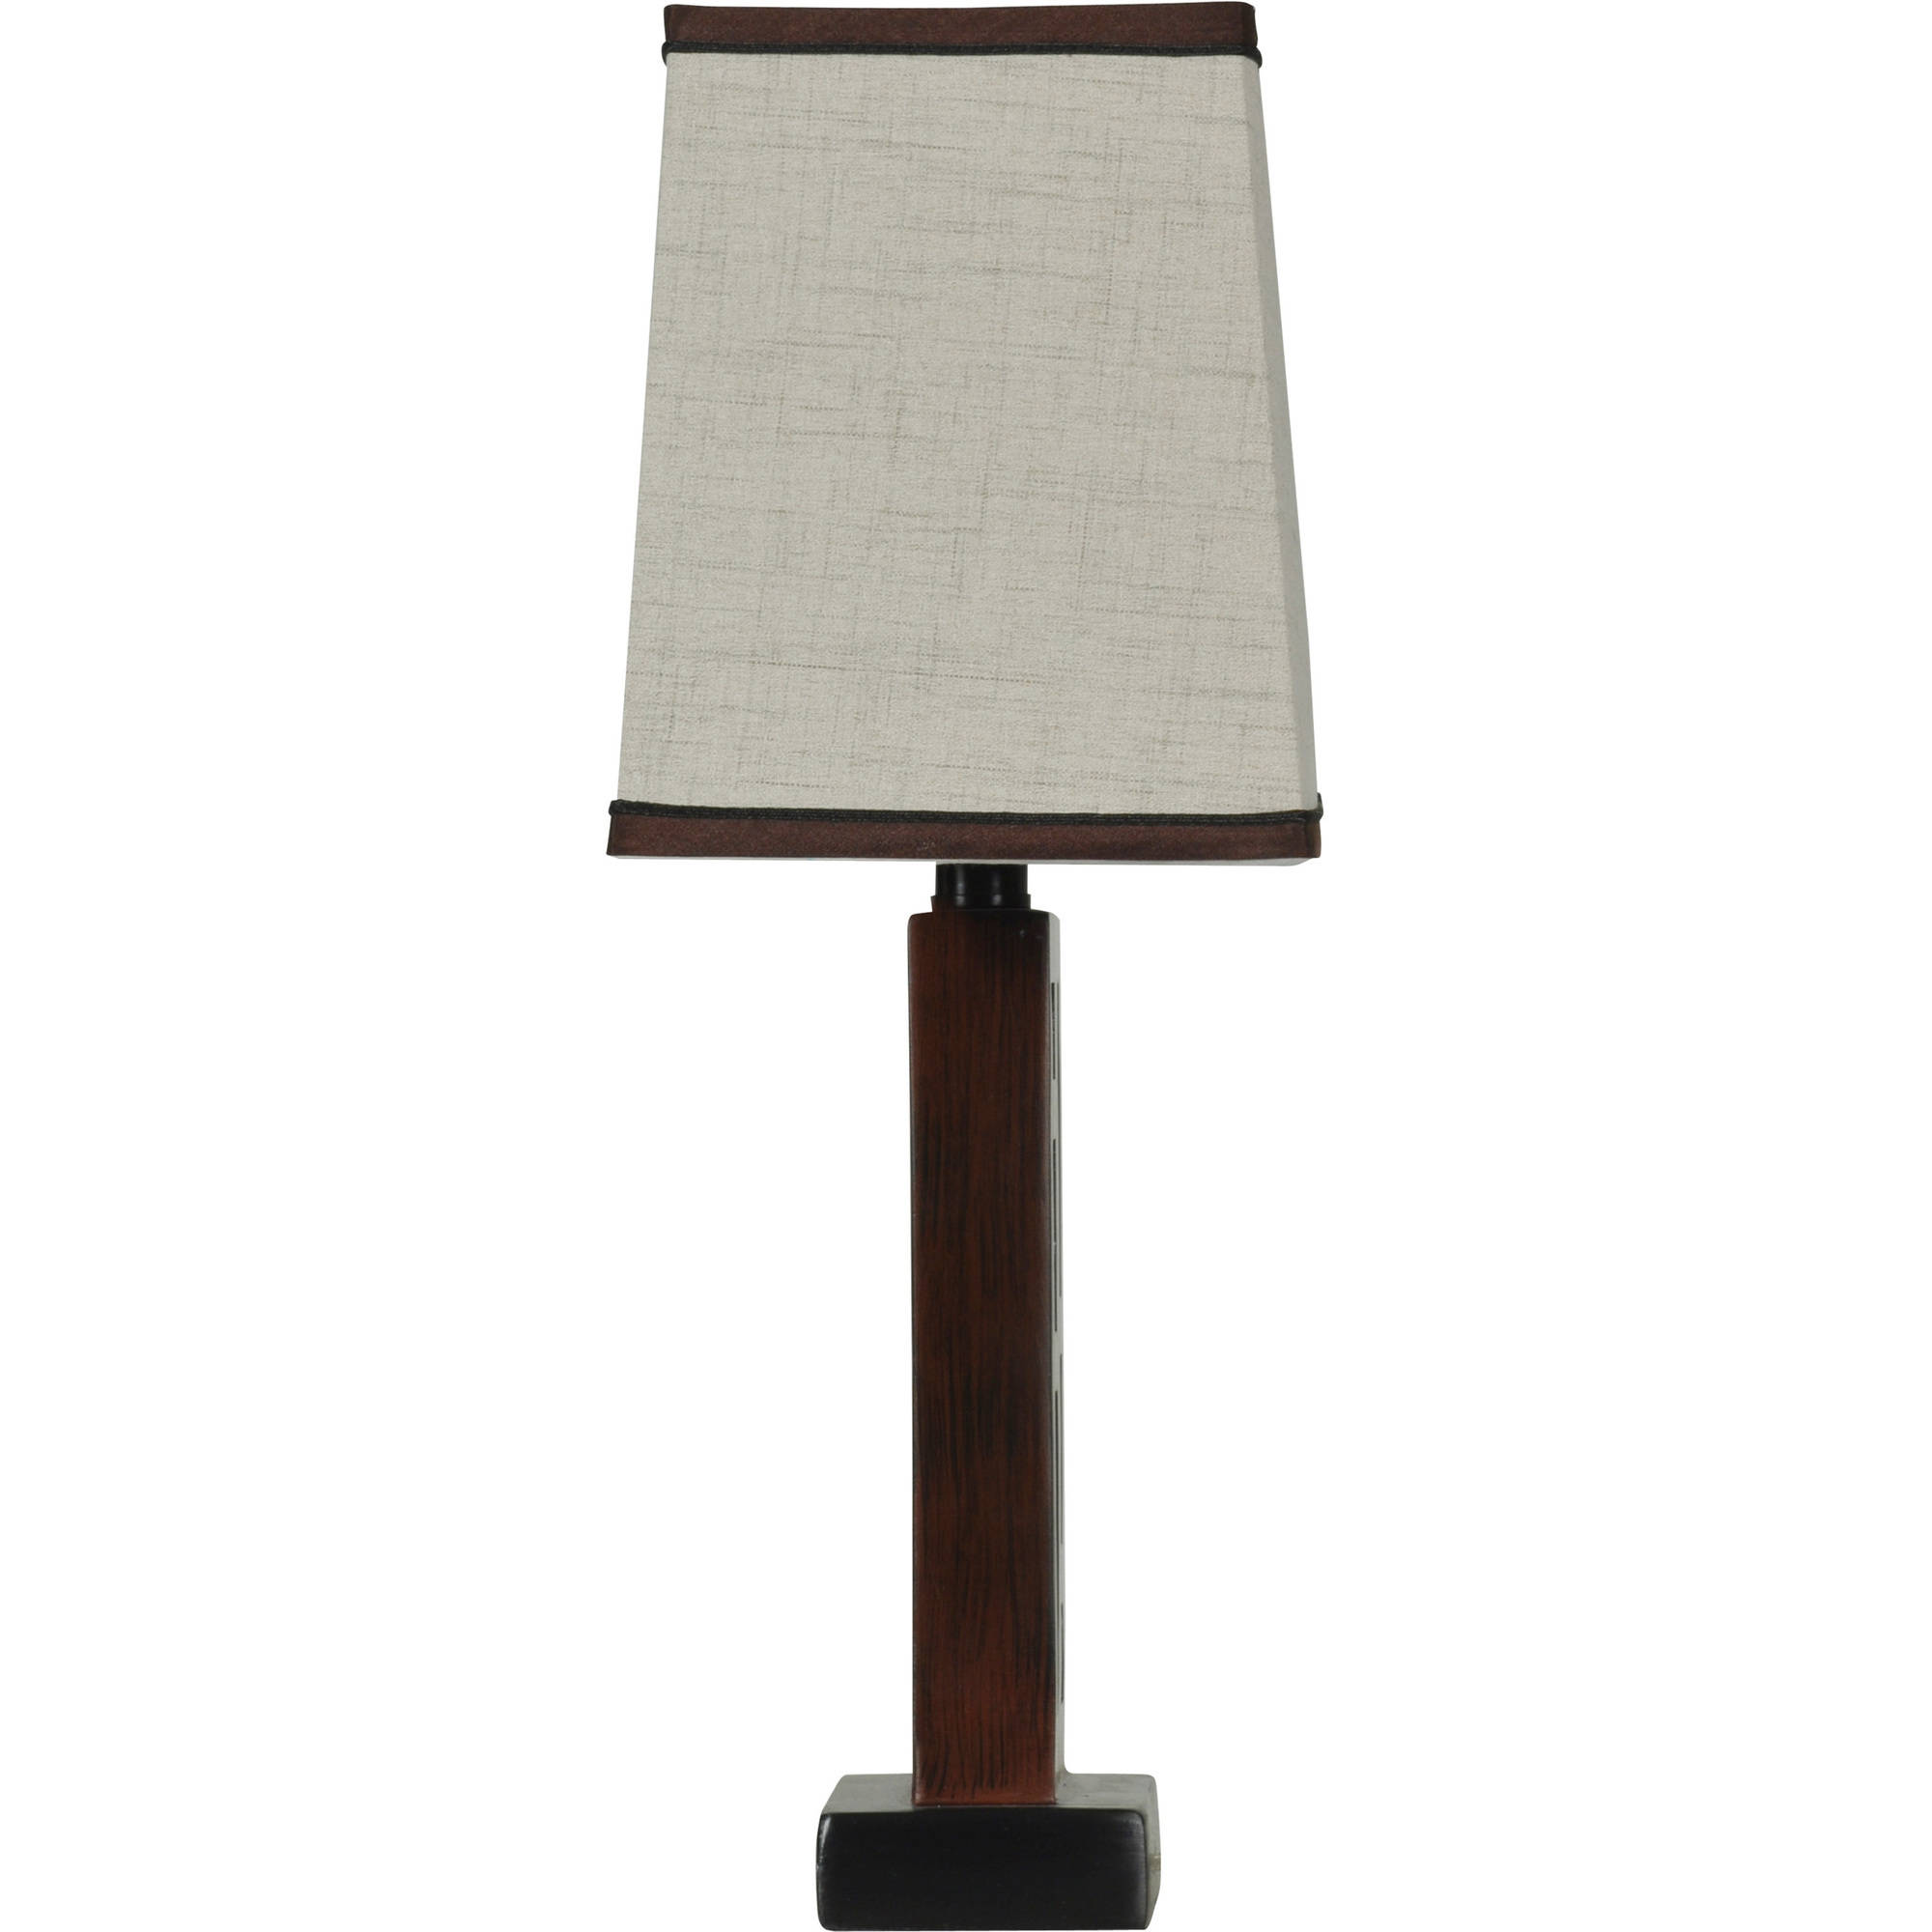 Better Homes and Gardens Open Works Lamp with Shade Walnut